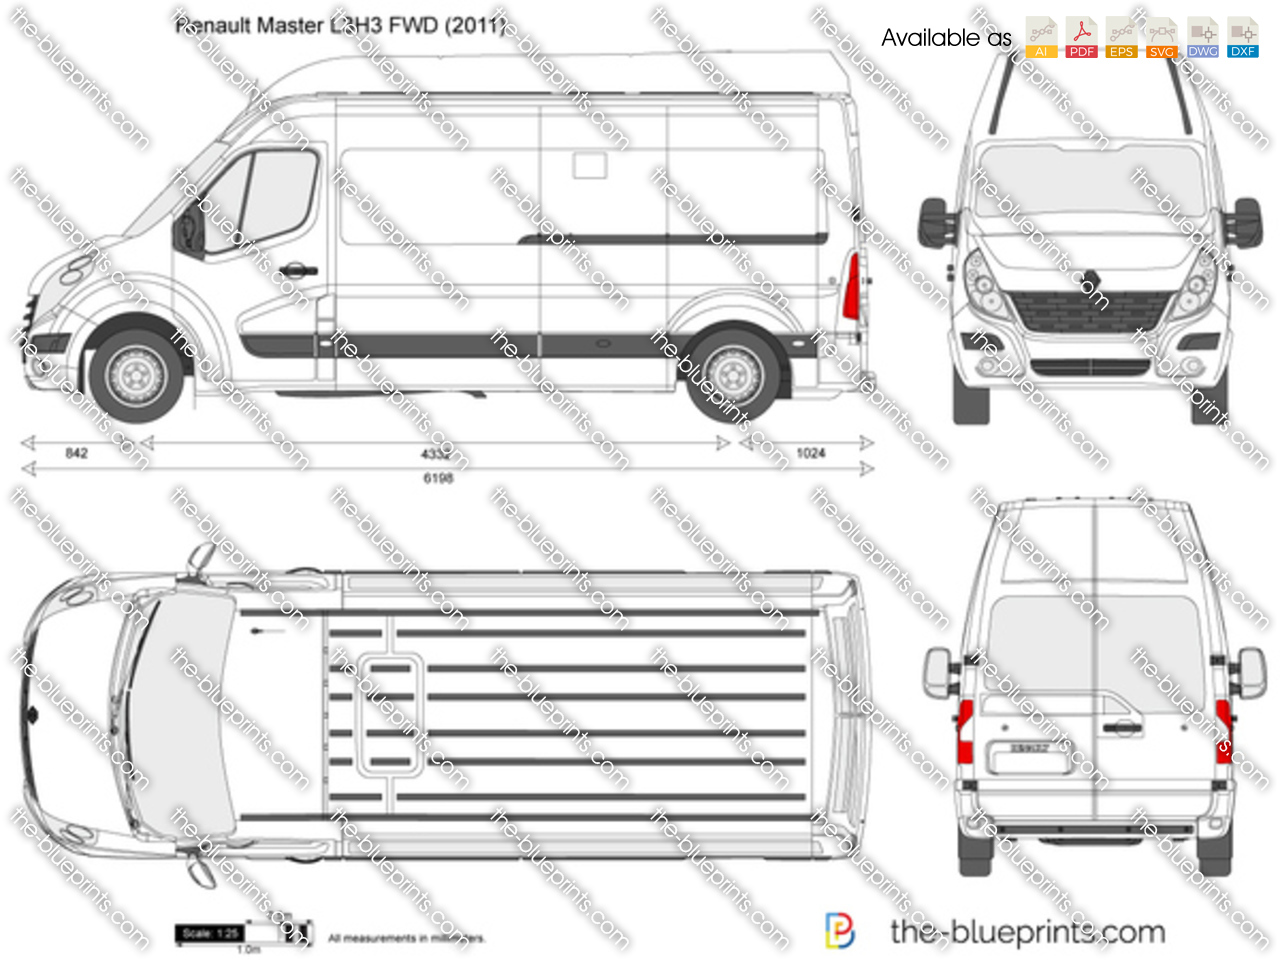 renault master l3h3 fwd vector drawing. Black Bedroom Furniture Sets. Home Design Ideas